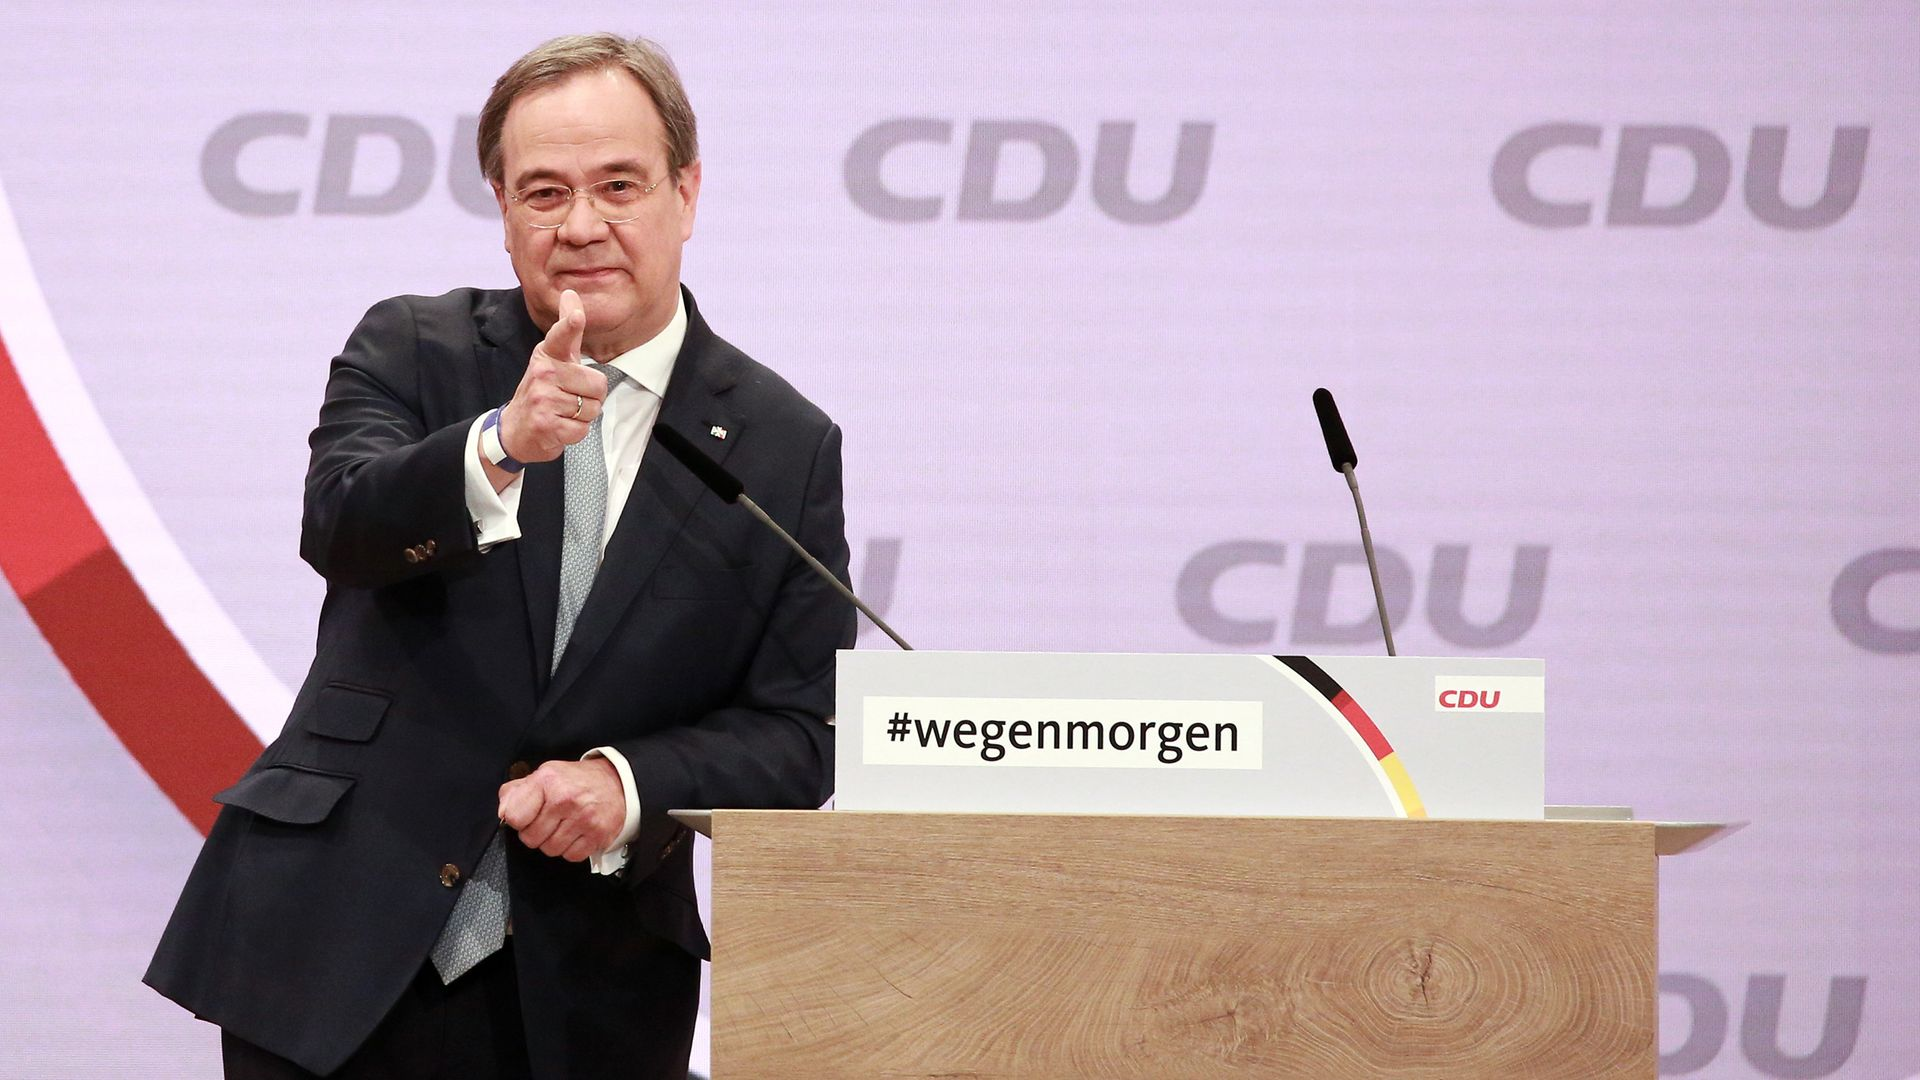 Armin Laschet speaks at the CDU party congress, where he was elected as its new leader - Credit: Getty Images